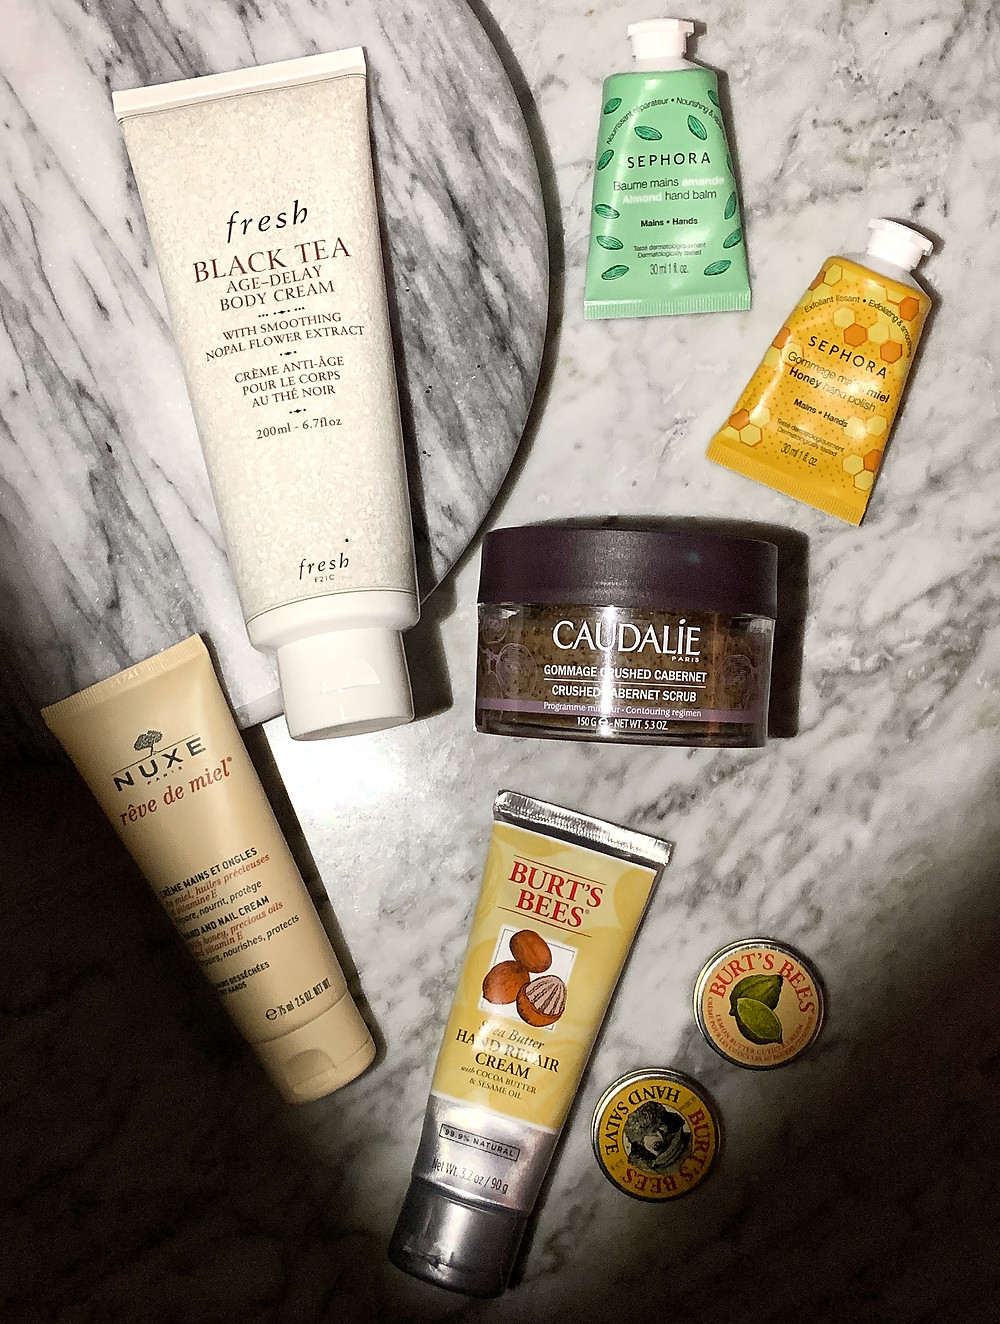 Golden Edition, The Beauty Edit Review, Body Care, Beauty Products for Winter, Caudalie, Dry Skin, Nuxe, Fresh Beauty, Sephora Collection, Burt's Bees, Hand Cream, Exfoliator, Body Cream, Skin Care